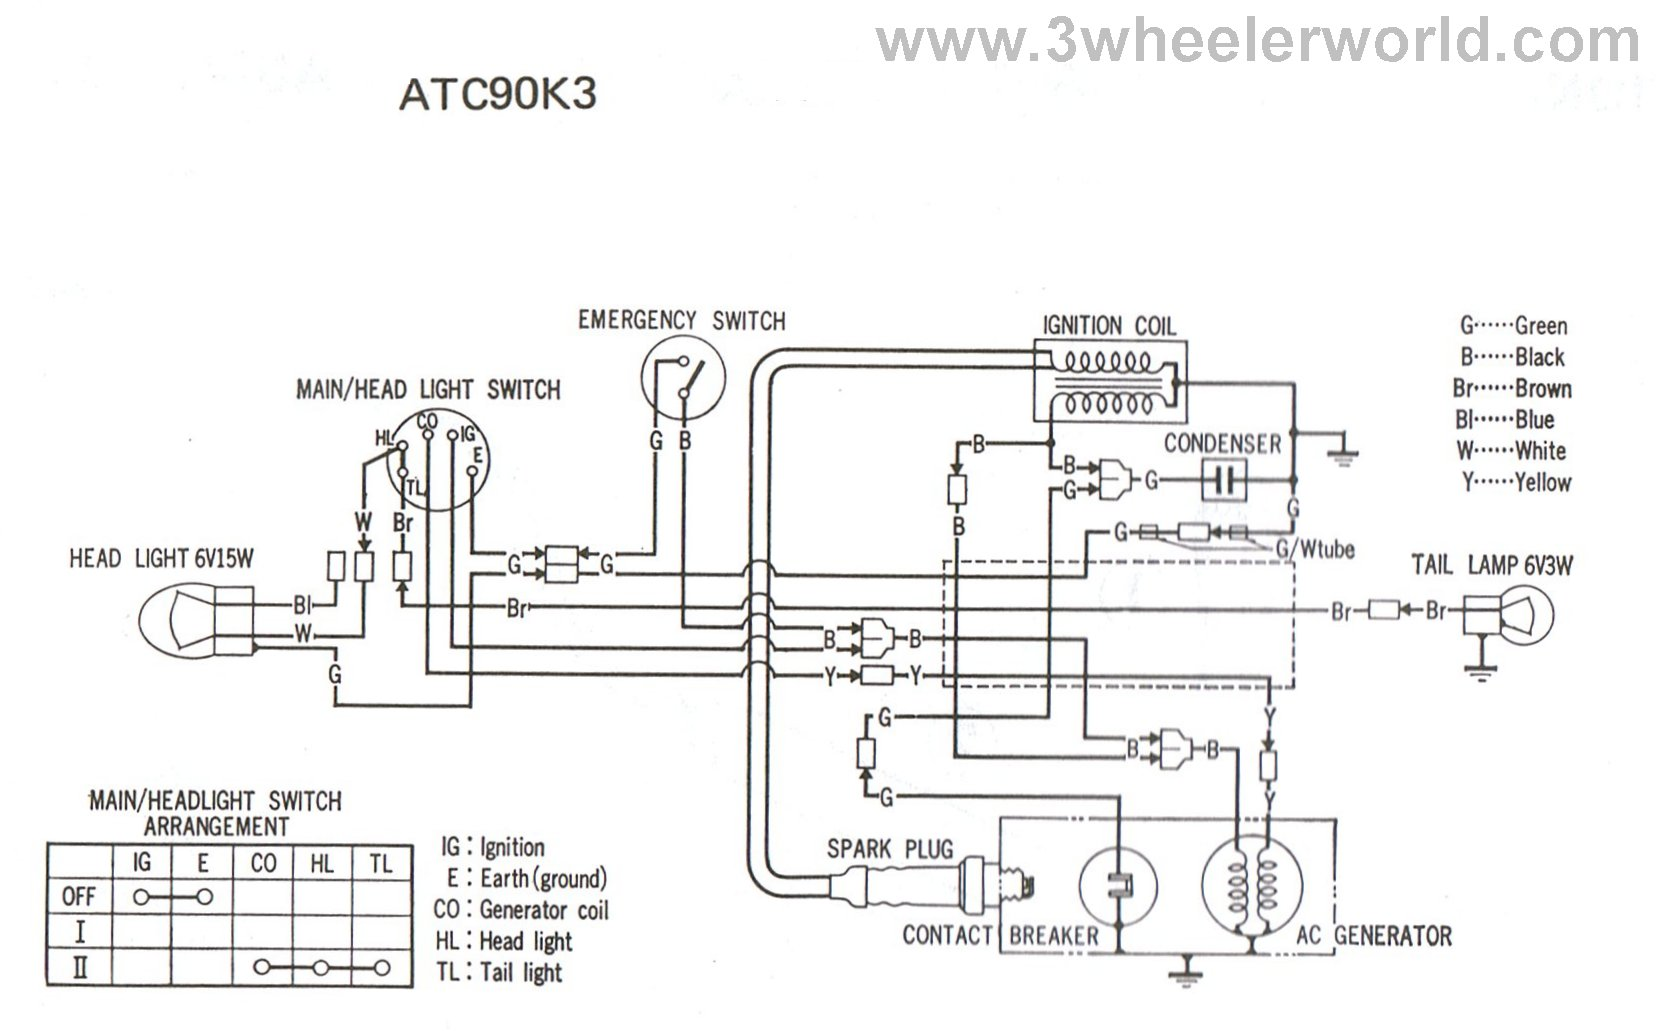 polaris scrambler 90 wiring diagram  polaris  get free image about wiring diagram polaris sportsman 90 wiring schematic 2005 polaris sportsman 90 wiring schematic